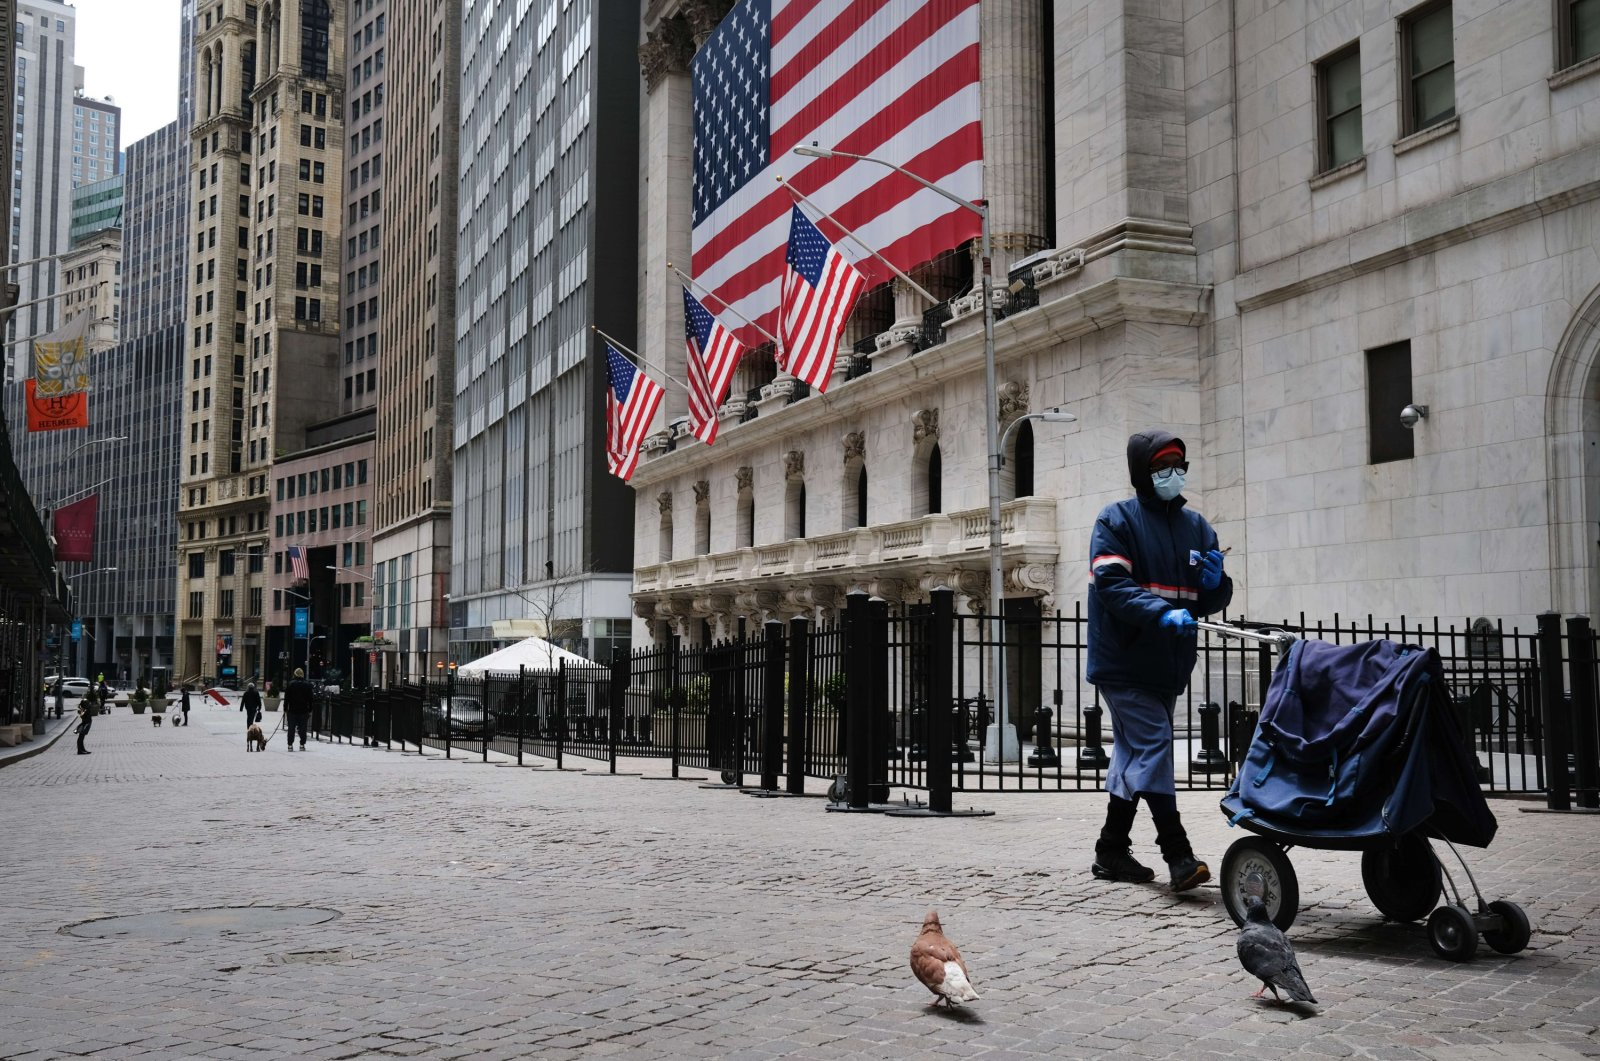 A person walks on Wall Street as the coronavirus keeps financial markets and businesses mostly closed in New York City, April 23, 2020. (AFP Photo)